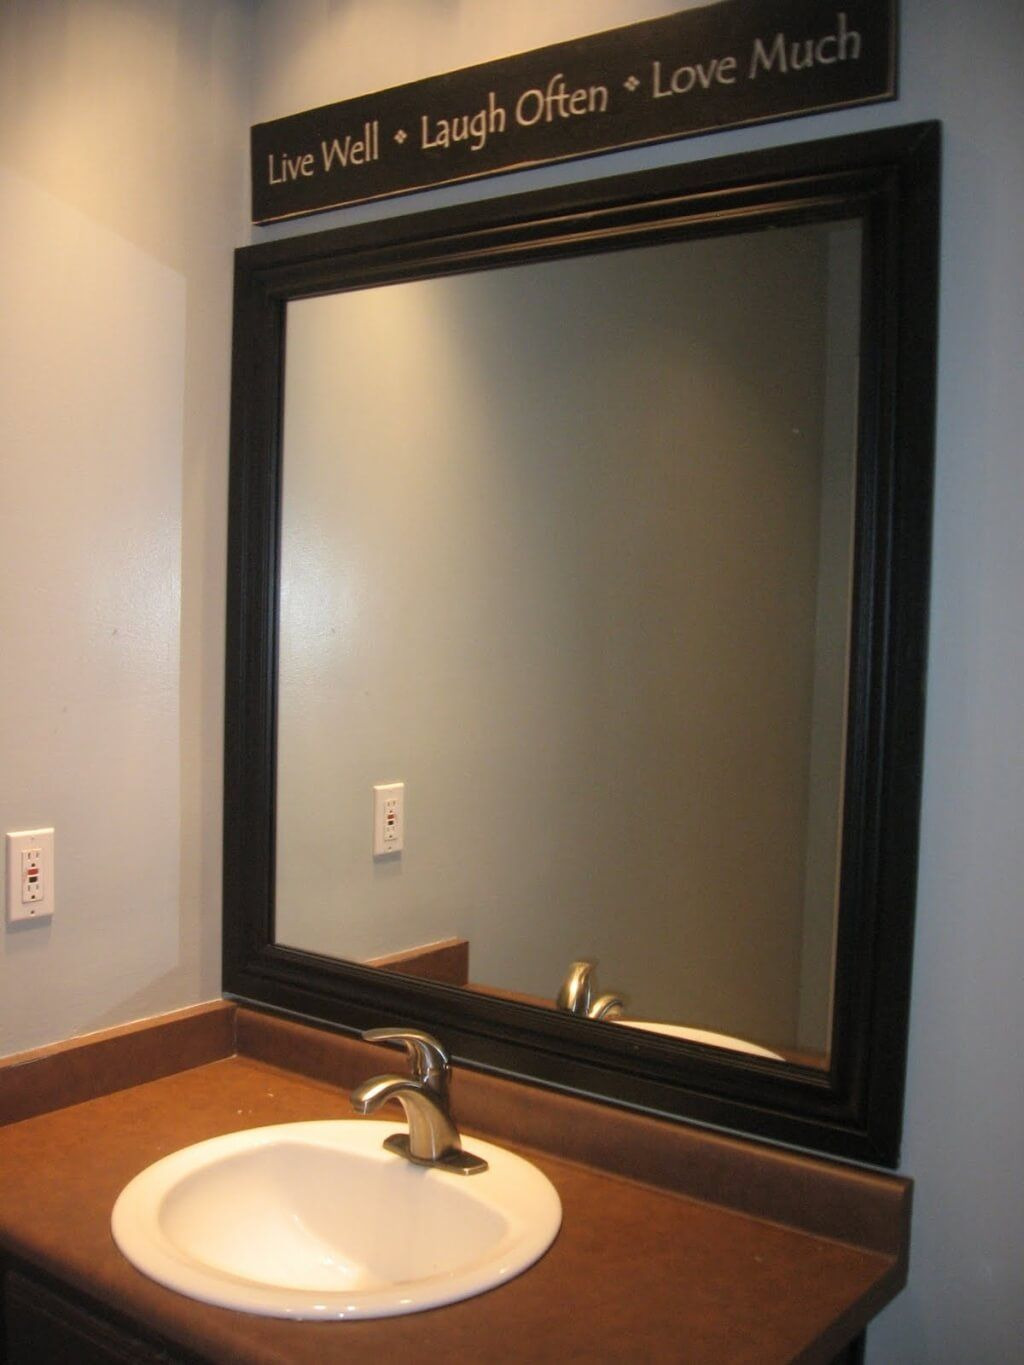 Decorative Bathroom Sinks Lovely Bathroom Contemporary Wall Mirrors for Bathrooms with